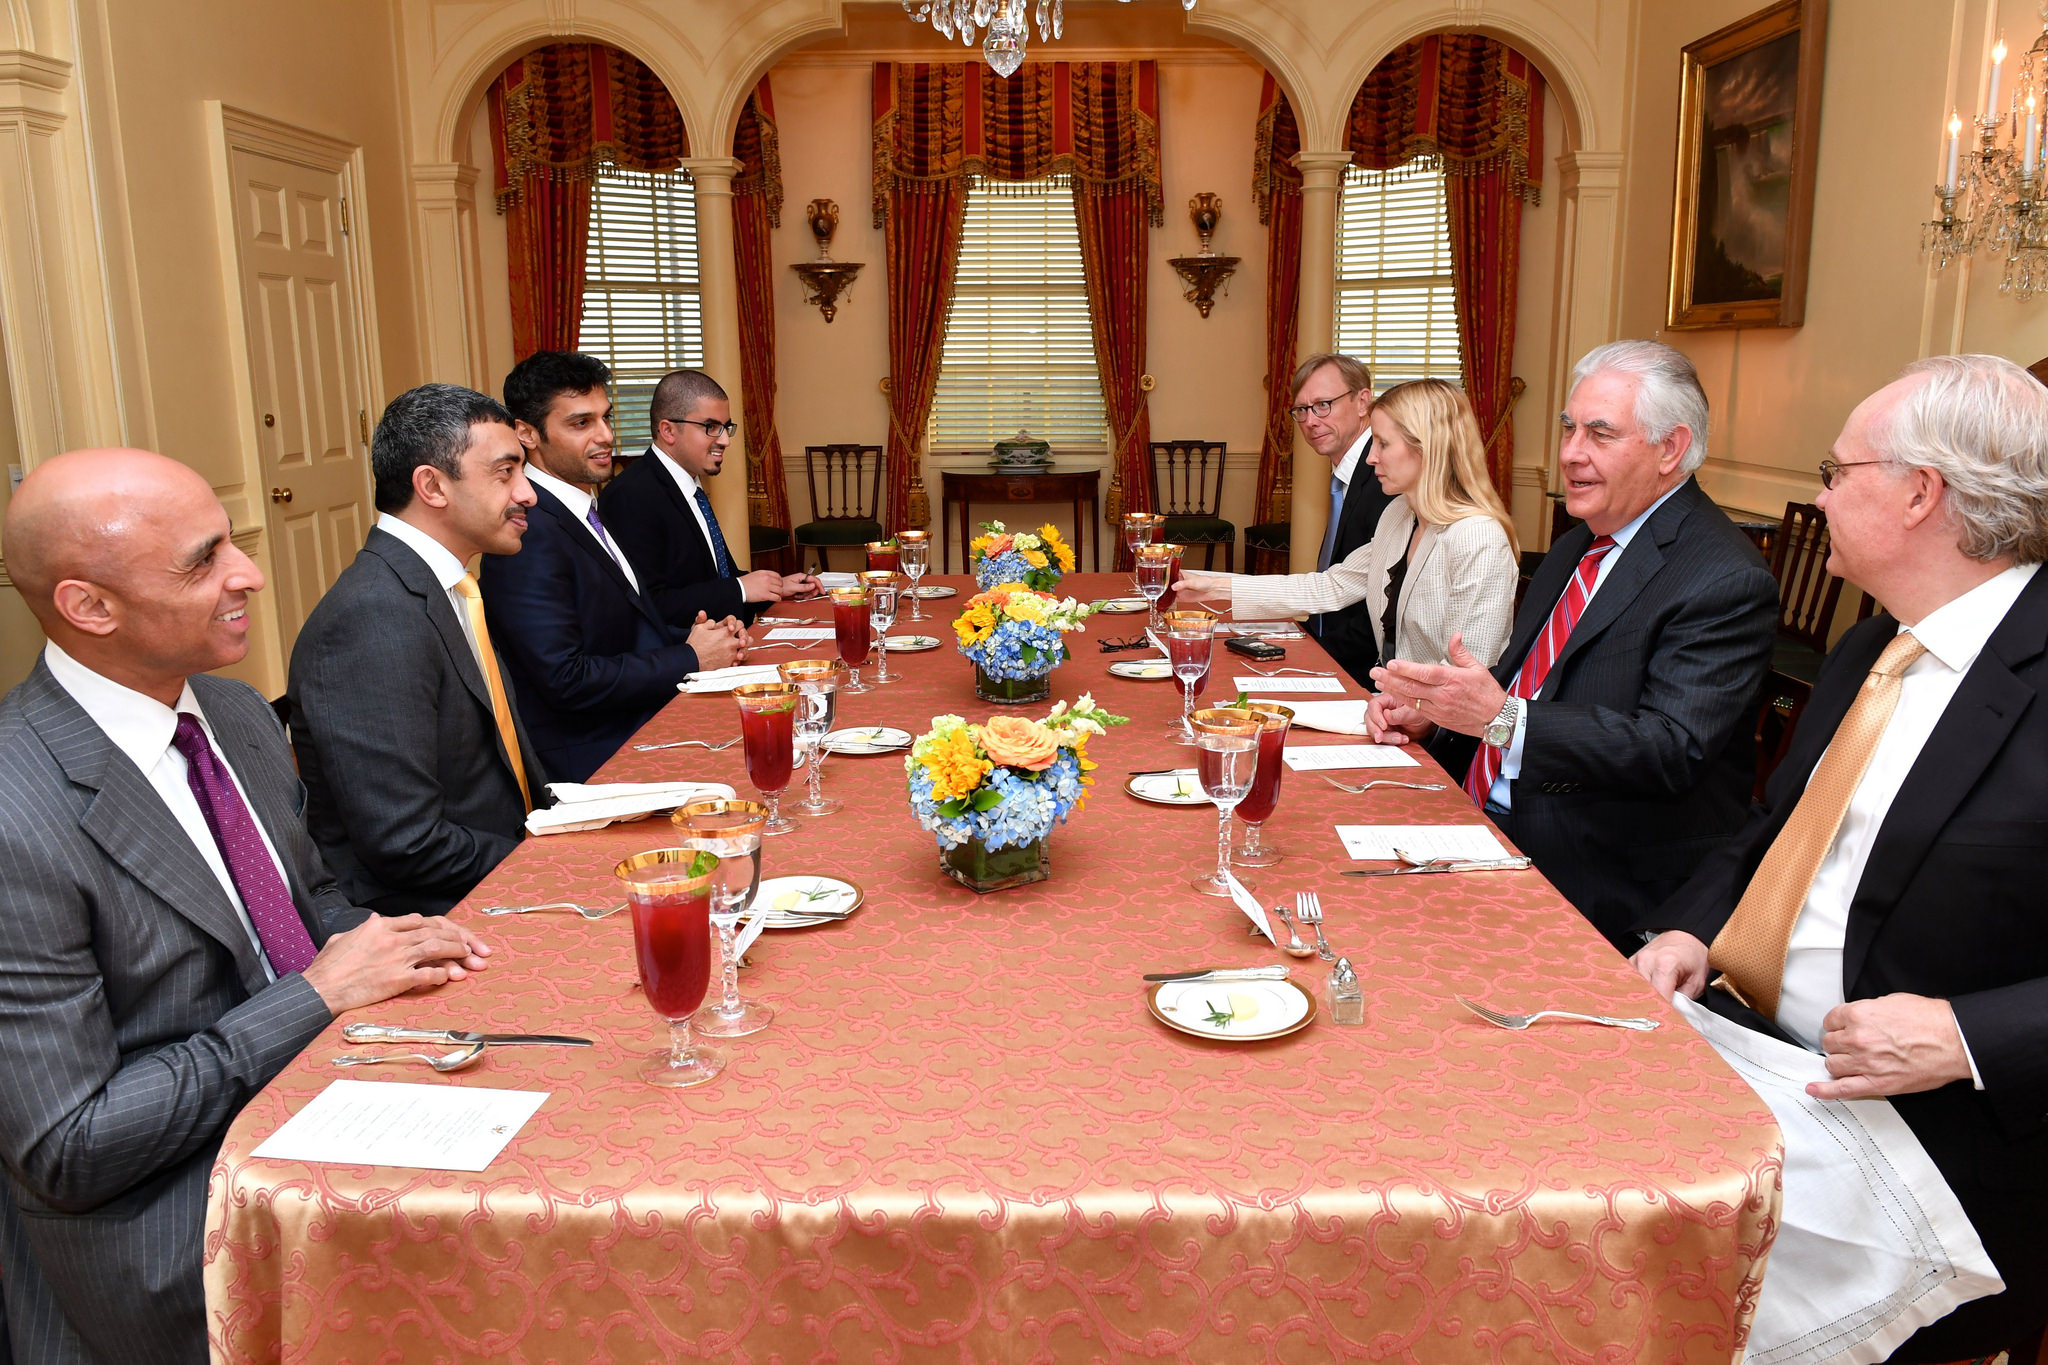 Otaiba and the UAE Foreign Minister Abdullah bin Zayed Al Nahyan at a working dinner with US Secretary of State Rex Tillerson and other officials at the State Department in June 2017 in Washington.